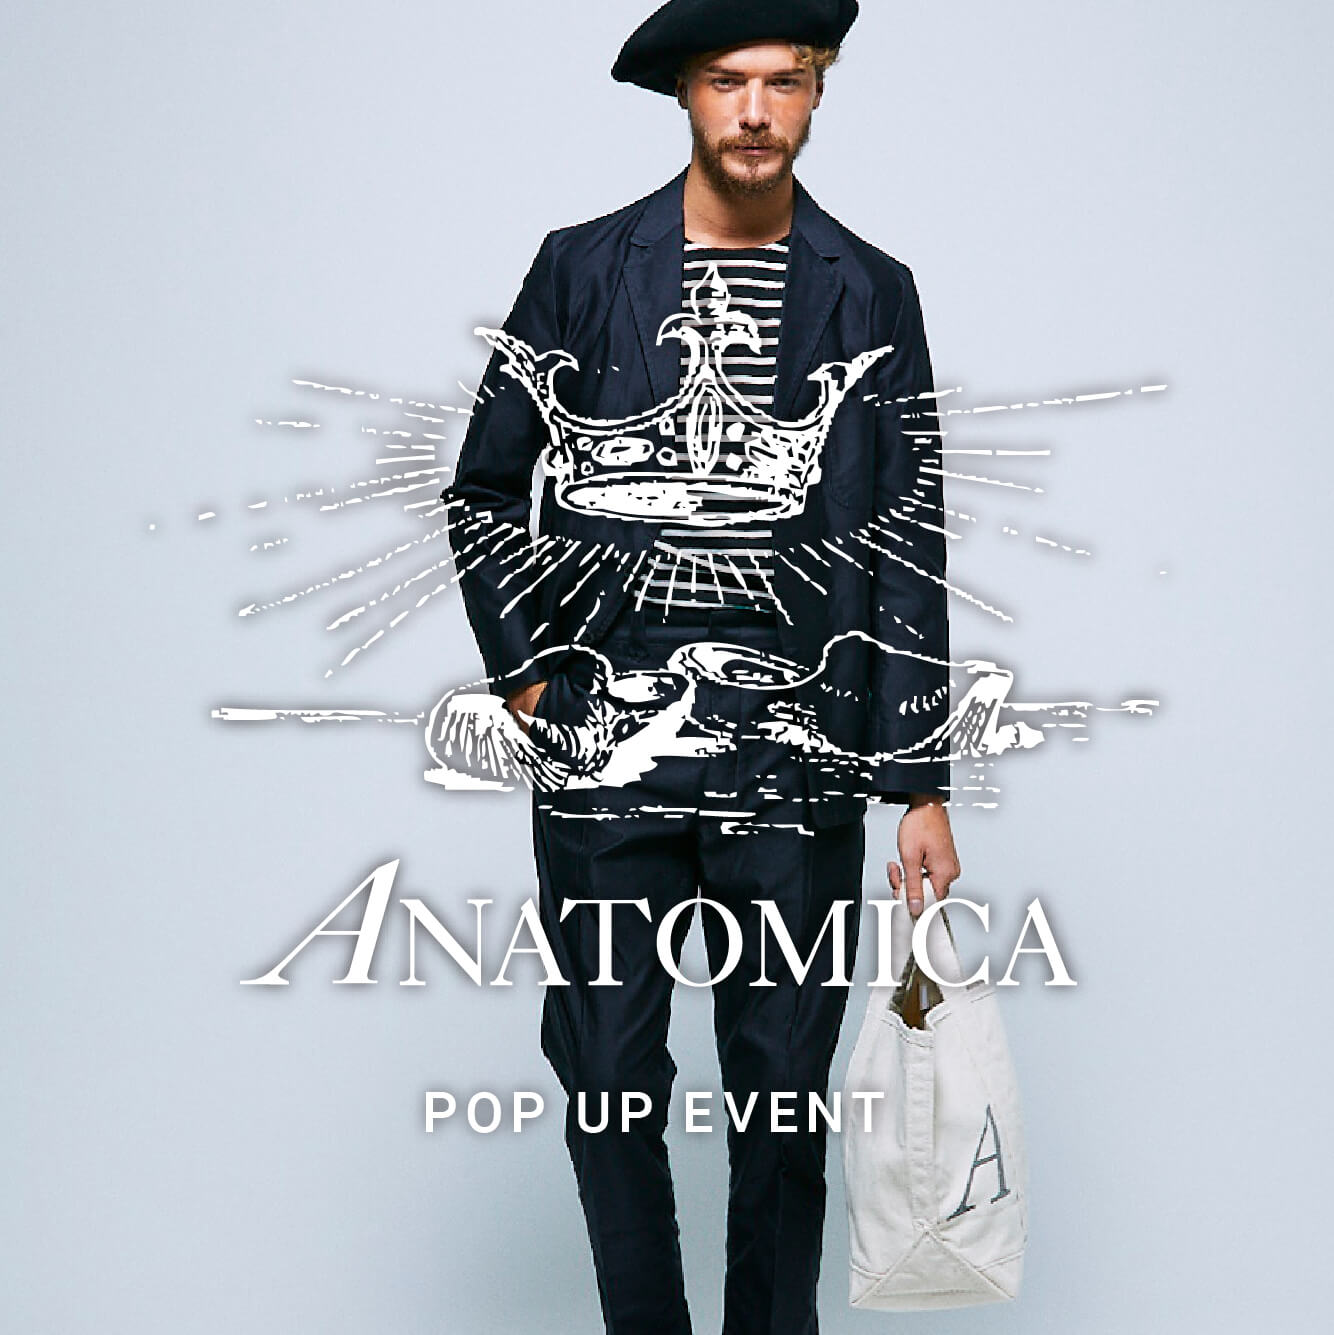 ANATOMICA POP UP EVENT START